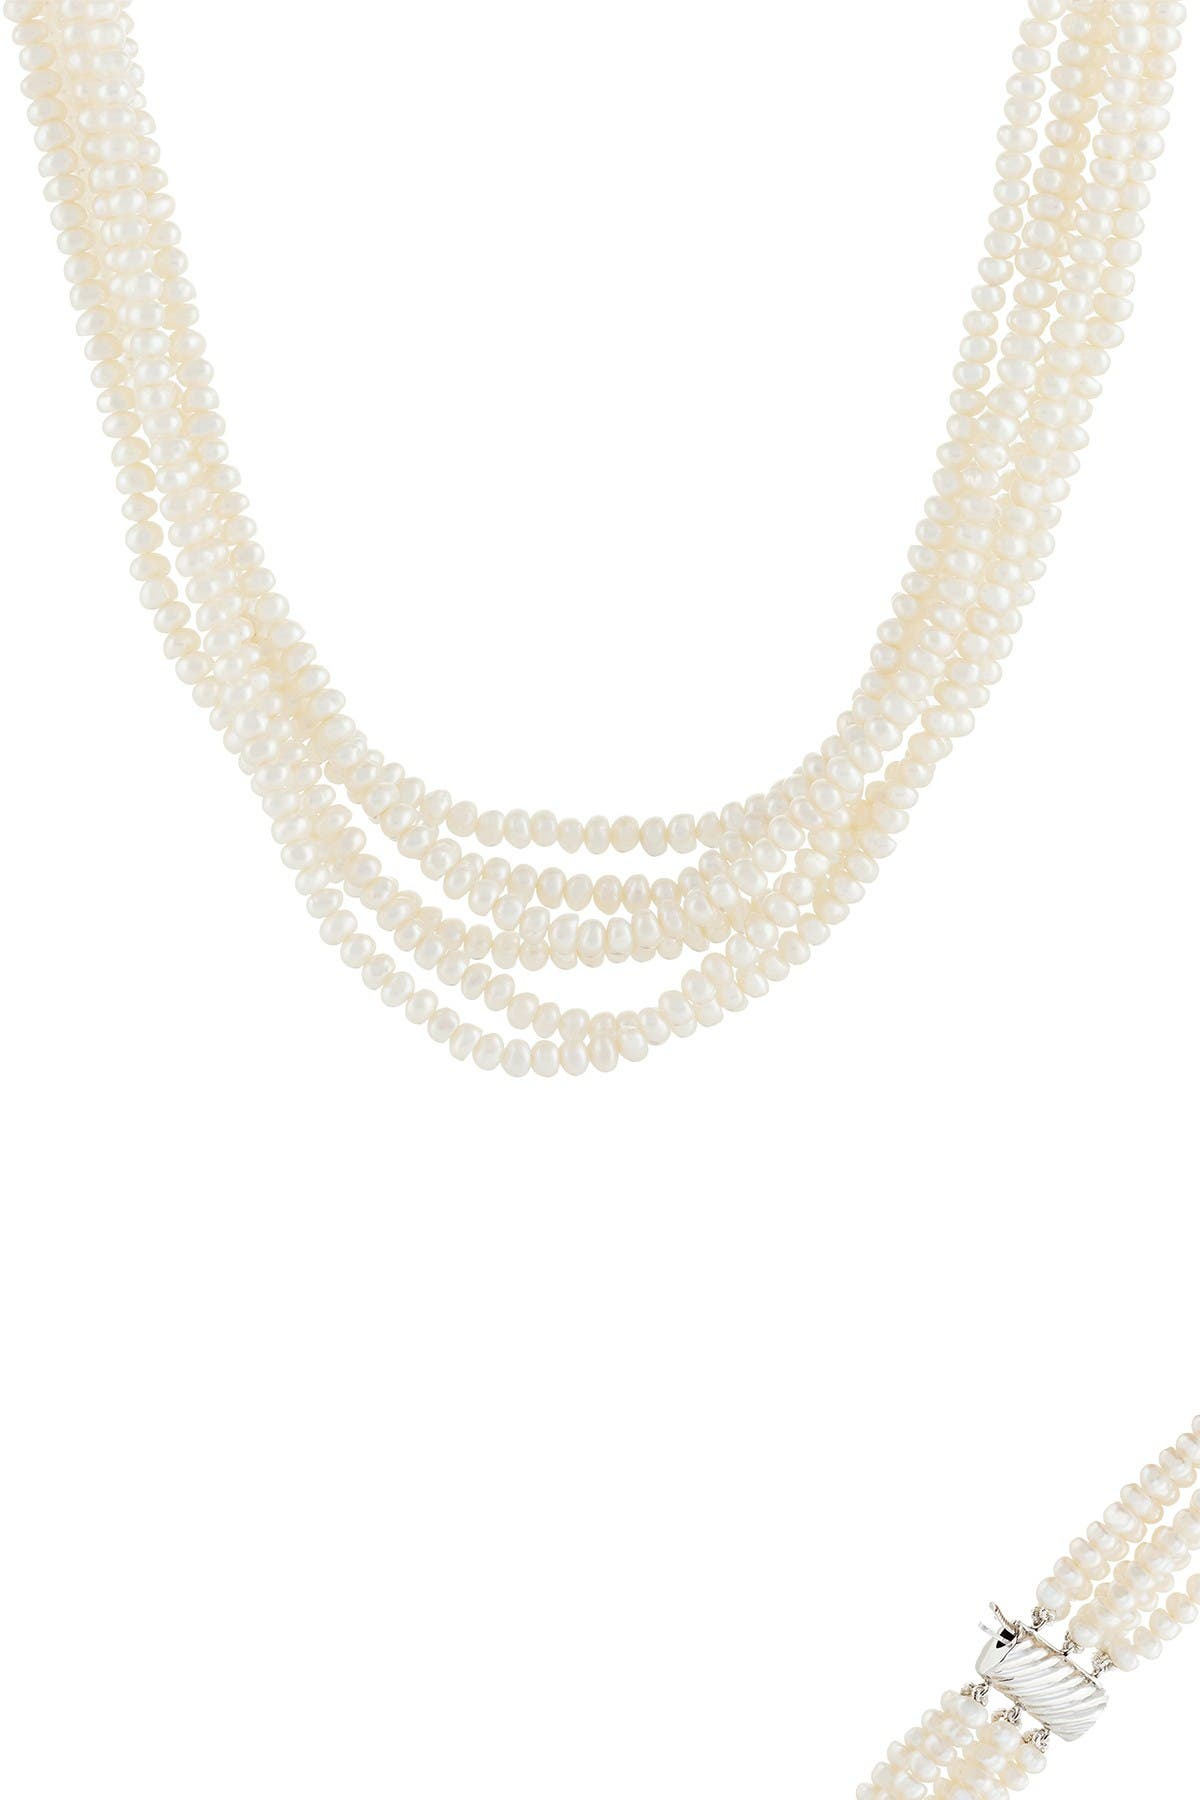 Image of Splendid Pearls 4-5mm Cultured Freshwater Pearl Layered Necklace